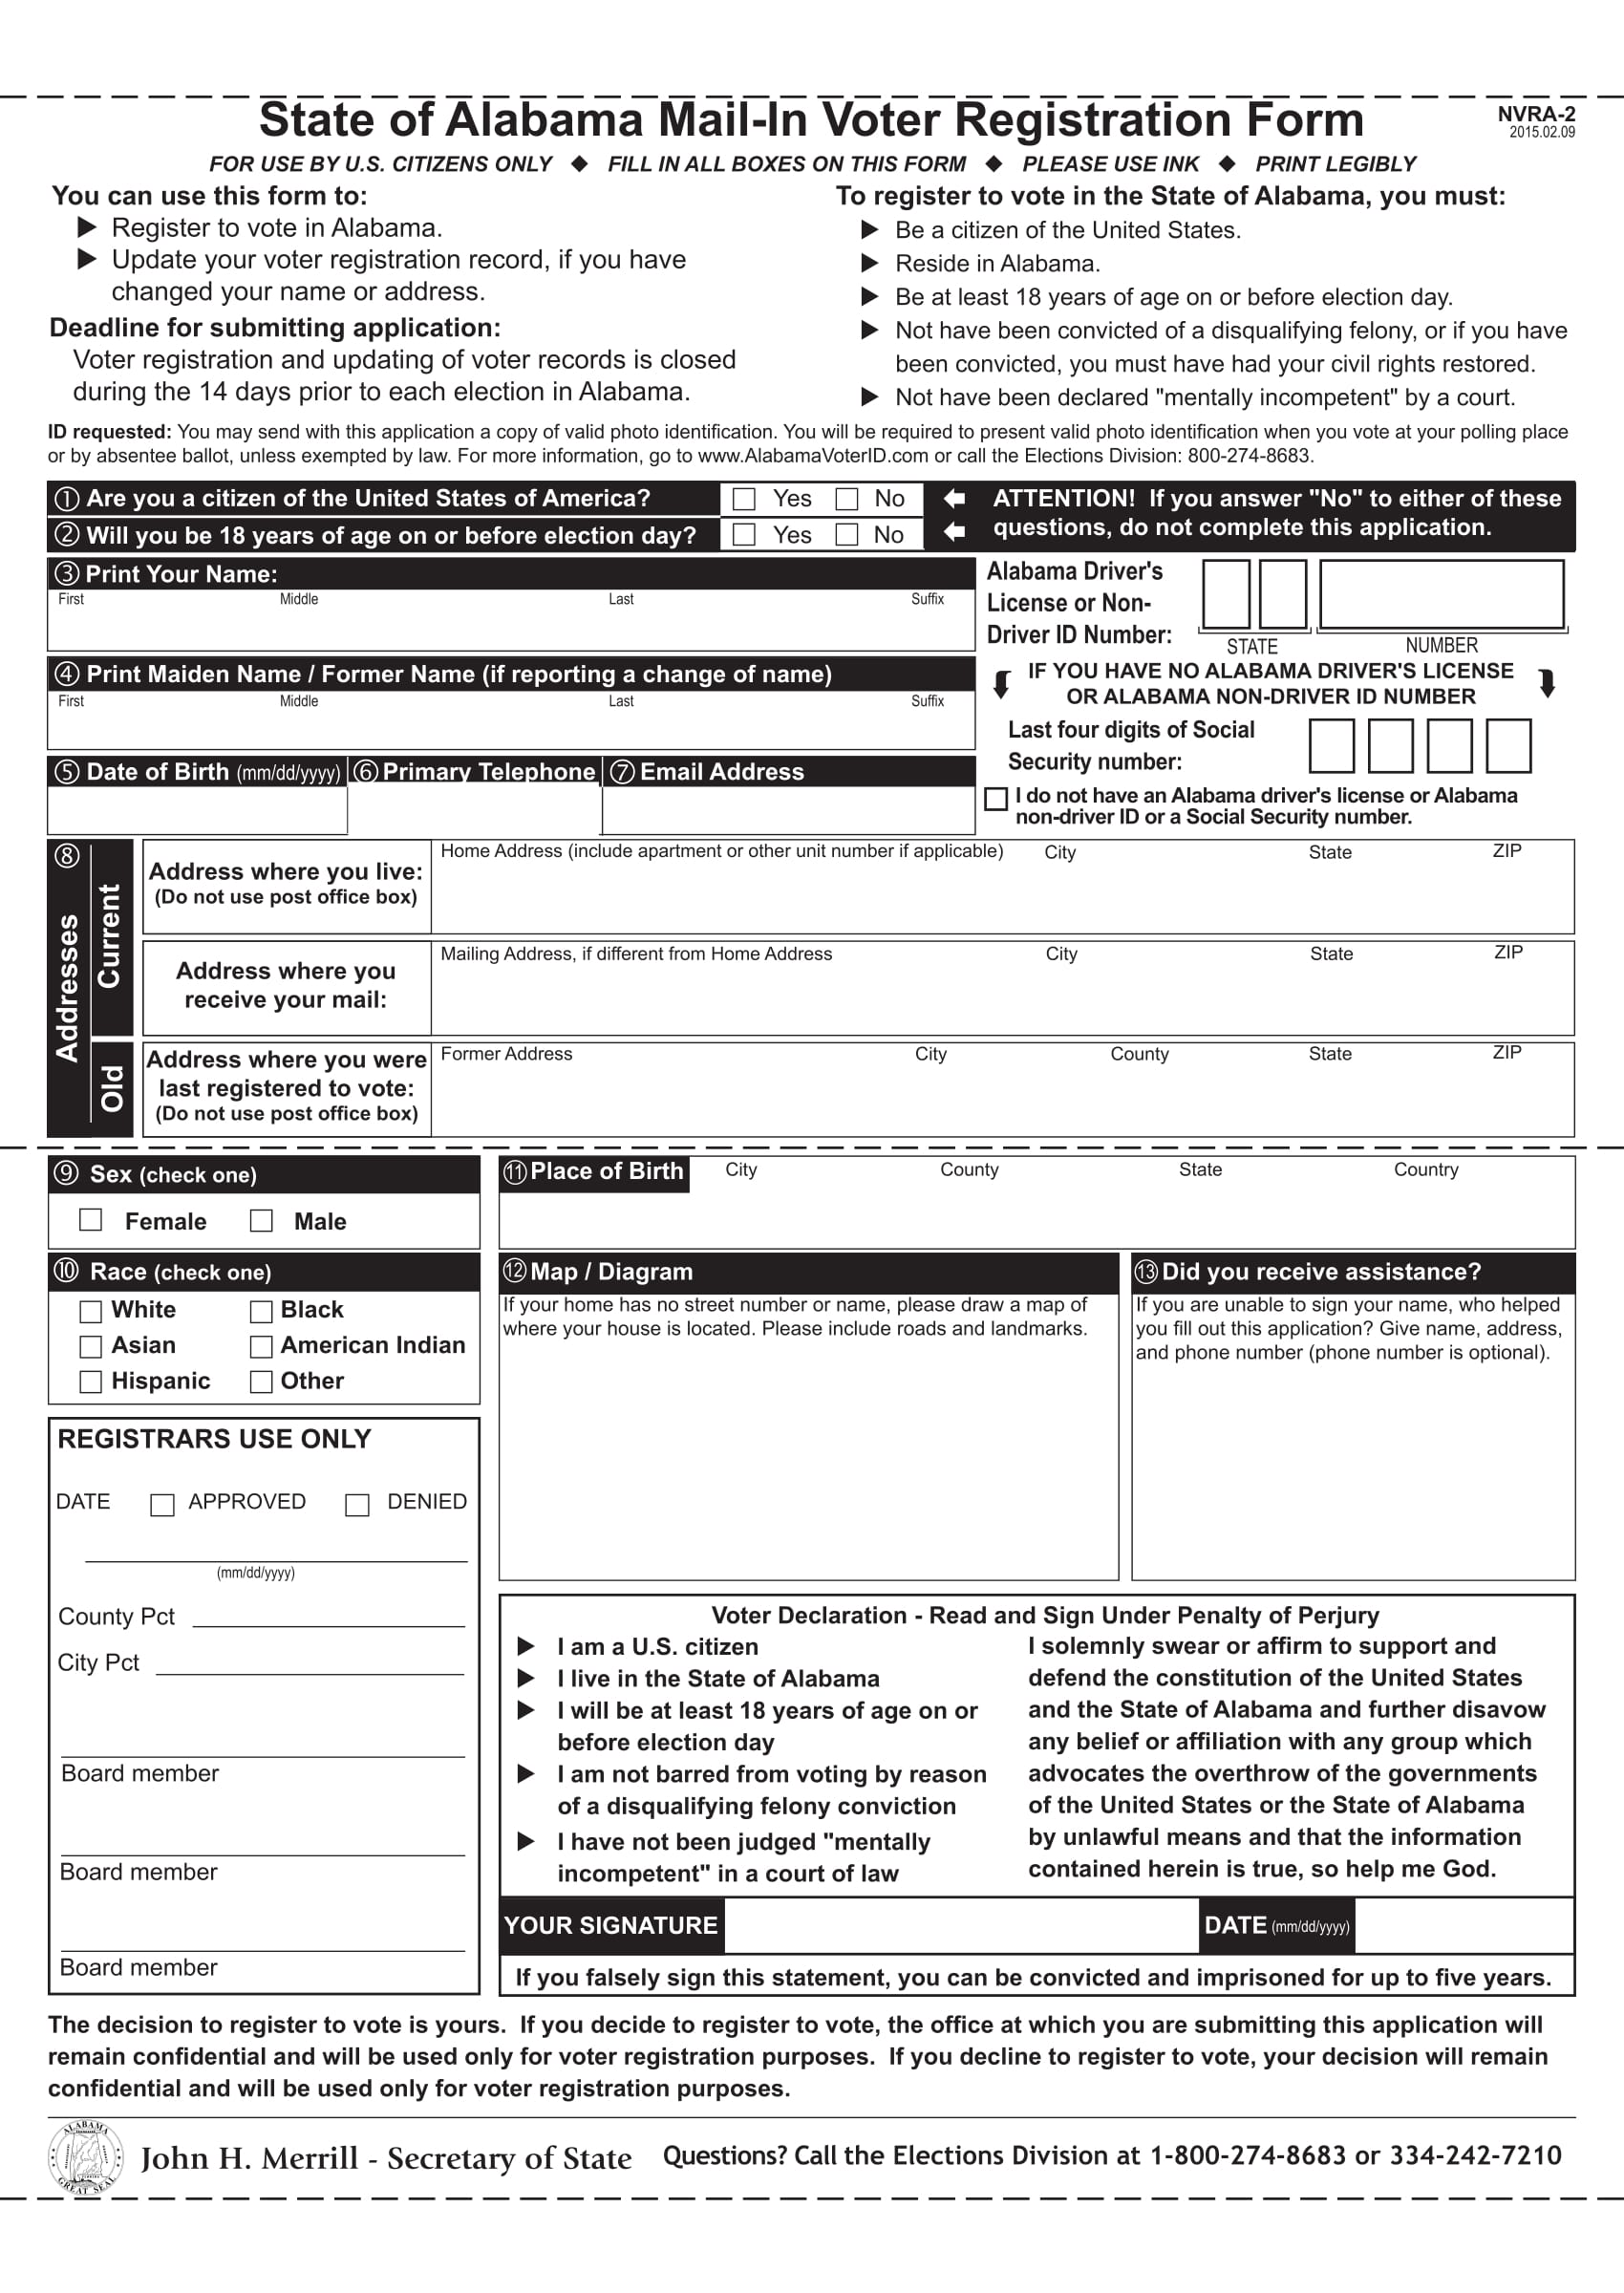 Free State of Alabama Mail-in Voter Registration Form - WikiForm ...